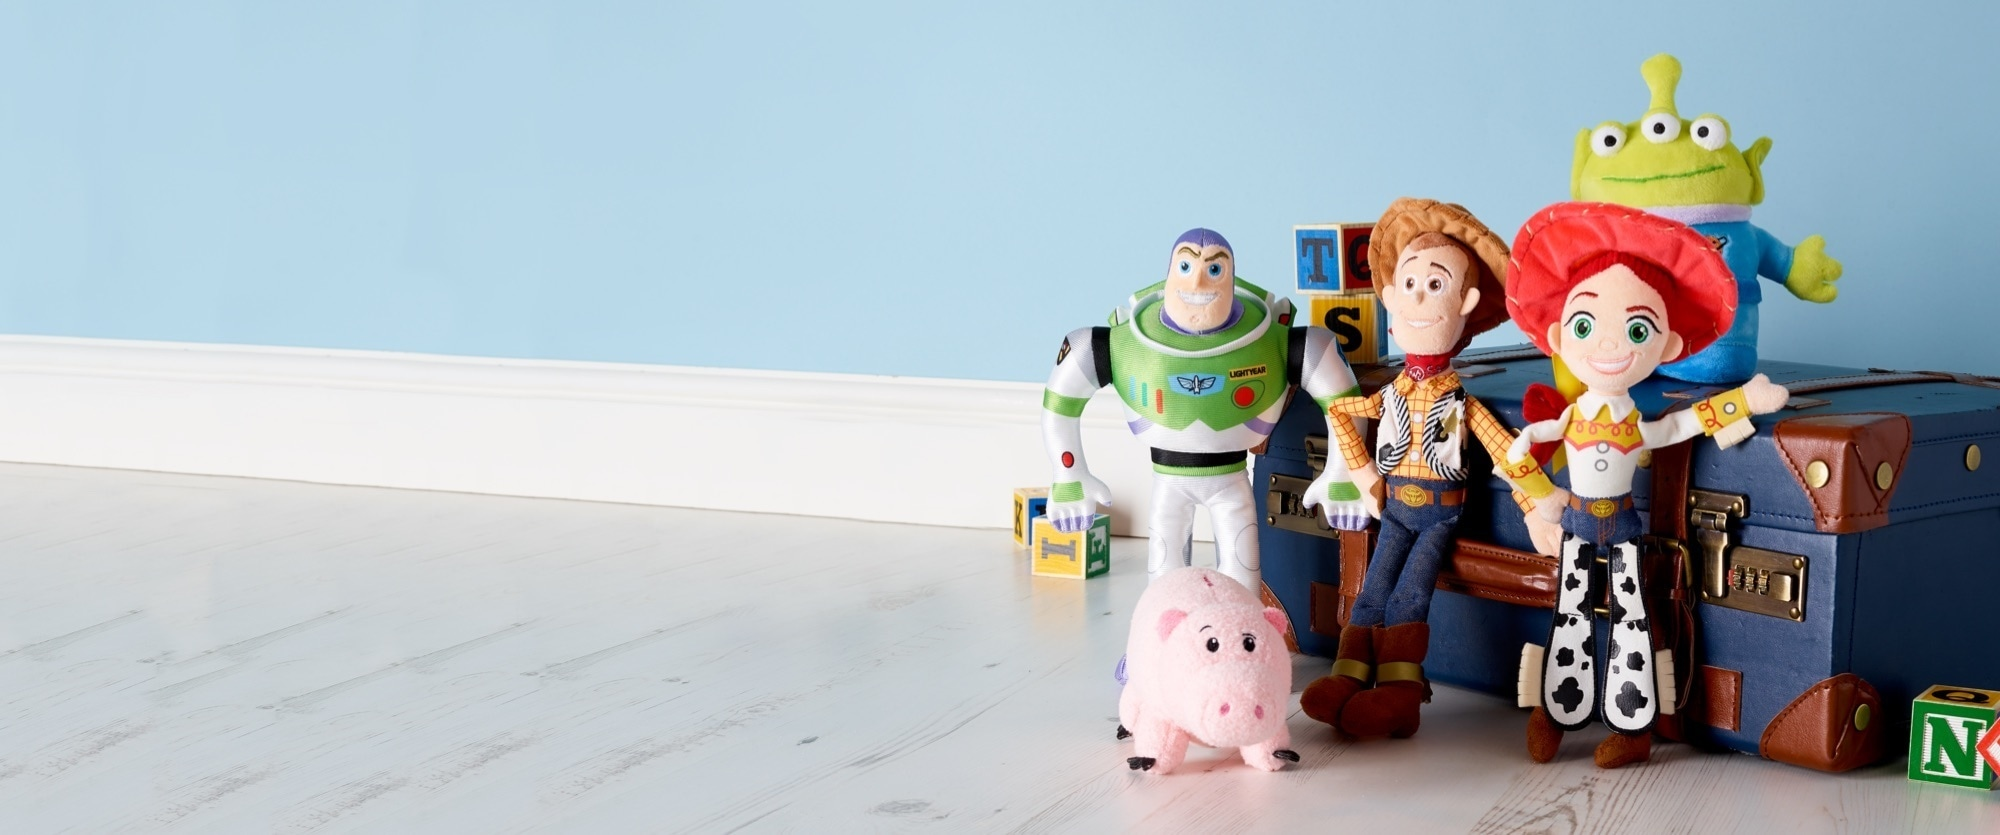 Acquista i prodotti Toy Story su shopDisney